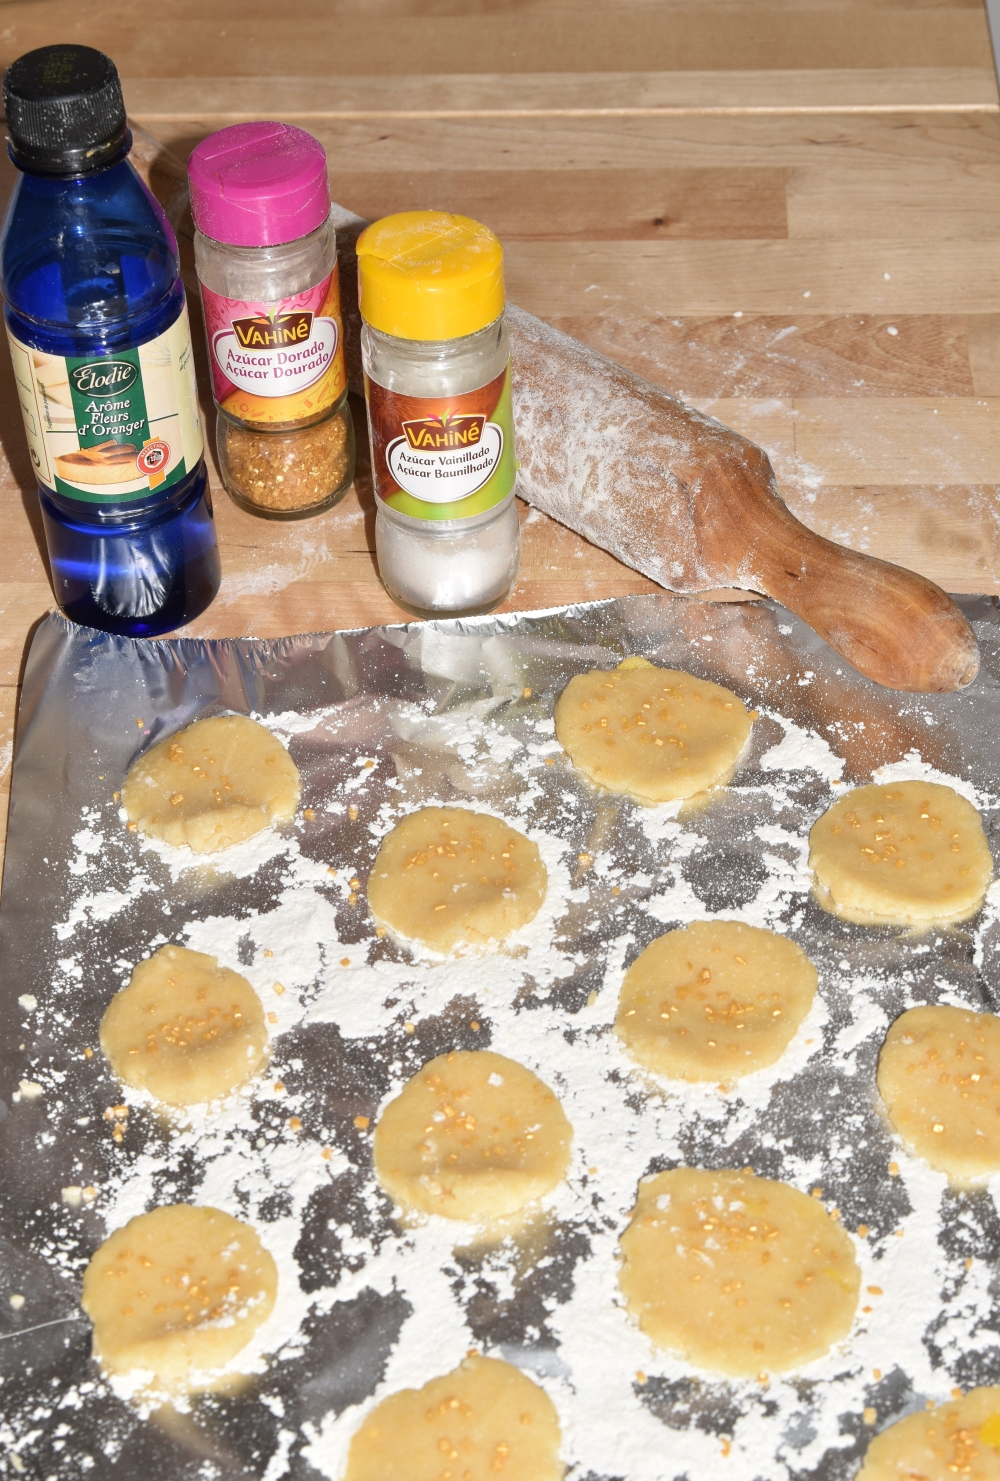 Unbaked cookies laying on a aluminium sheet with flour. Next to it, a plastic bottle of orange blossom water, a golden sugar jar, and a vanilla sugar jar stand next to the rolling pin.